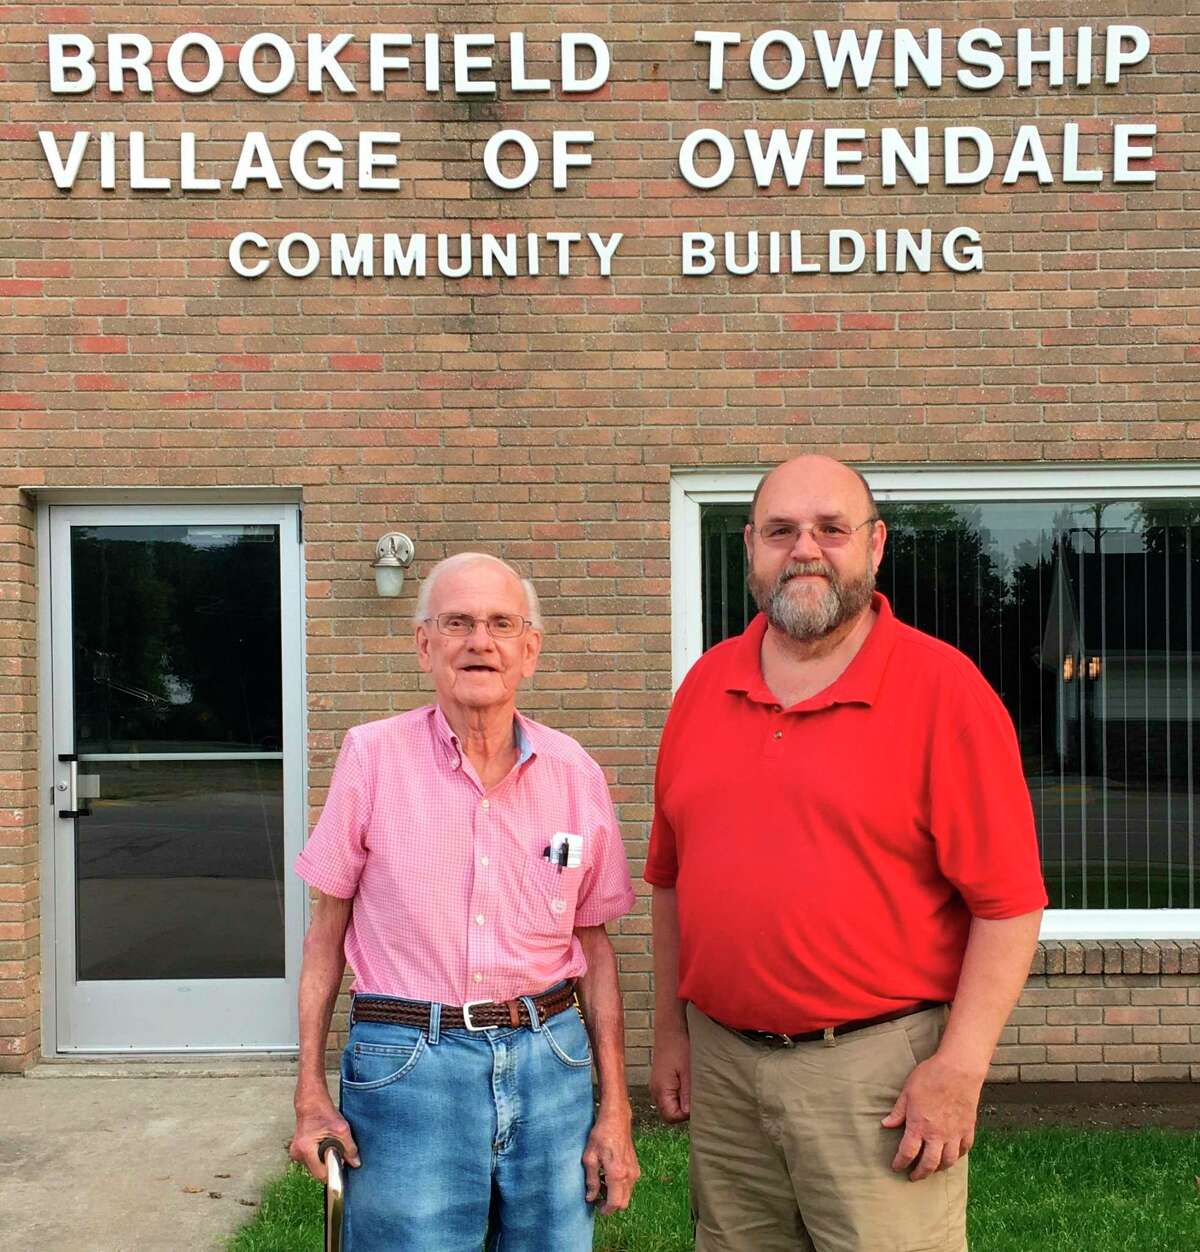 Between Owendale Village President Walter Howard, left, and his cousin, village Clerk Randy Howard, right, the two have served on the council for a combined 75 years. (Courtesy Photo)